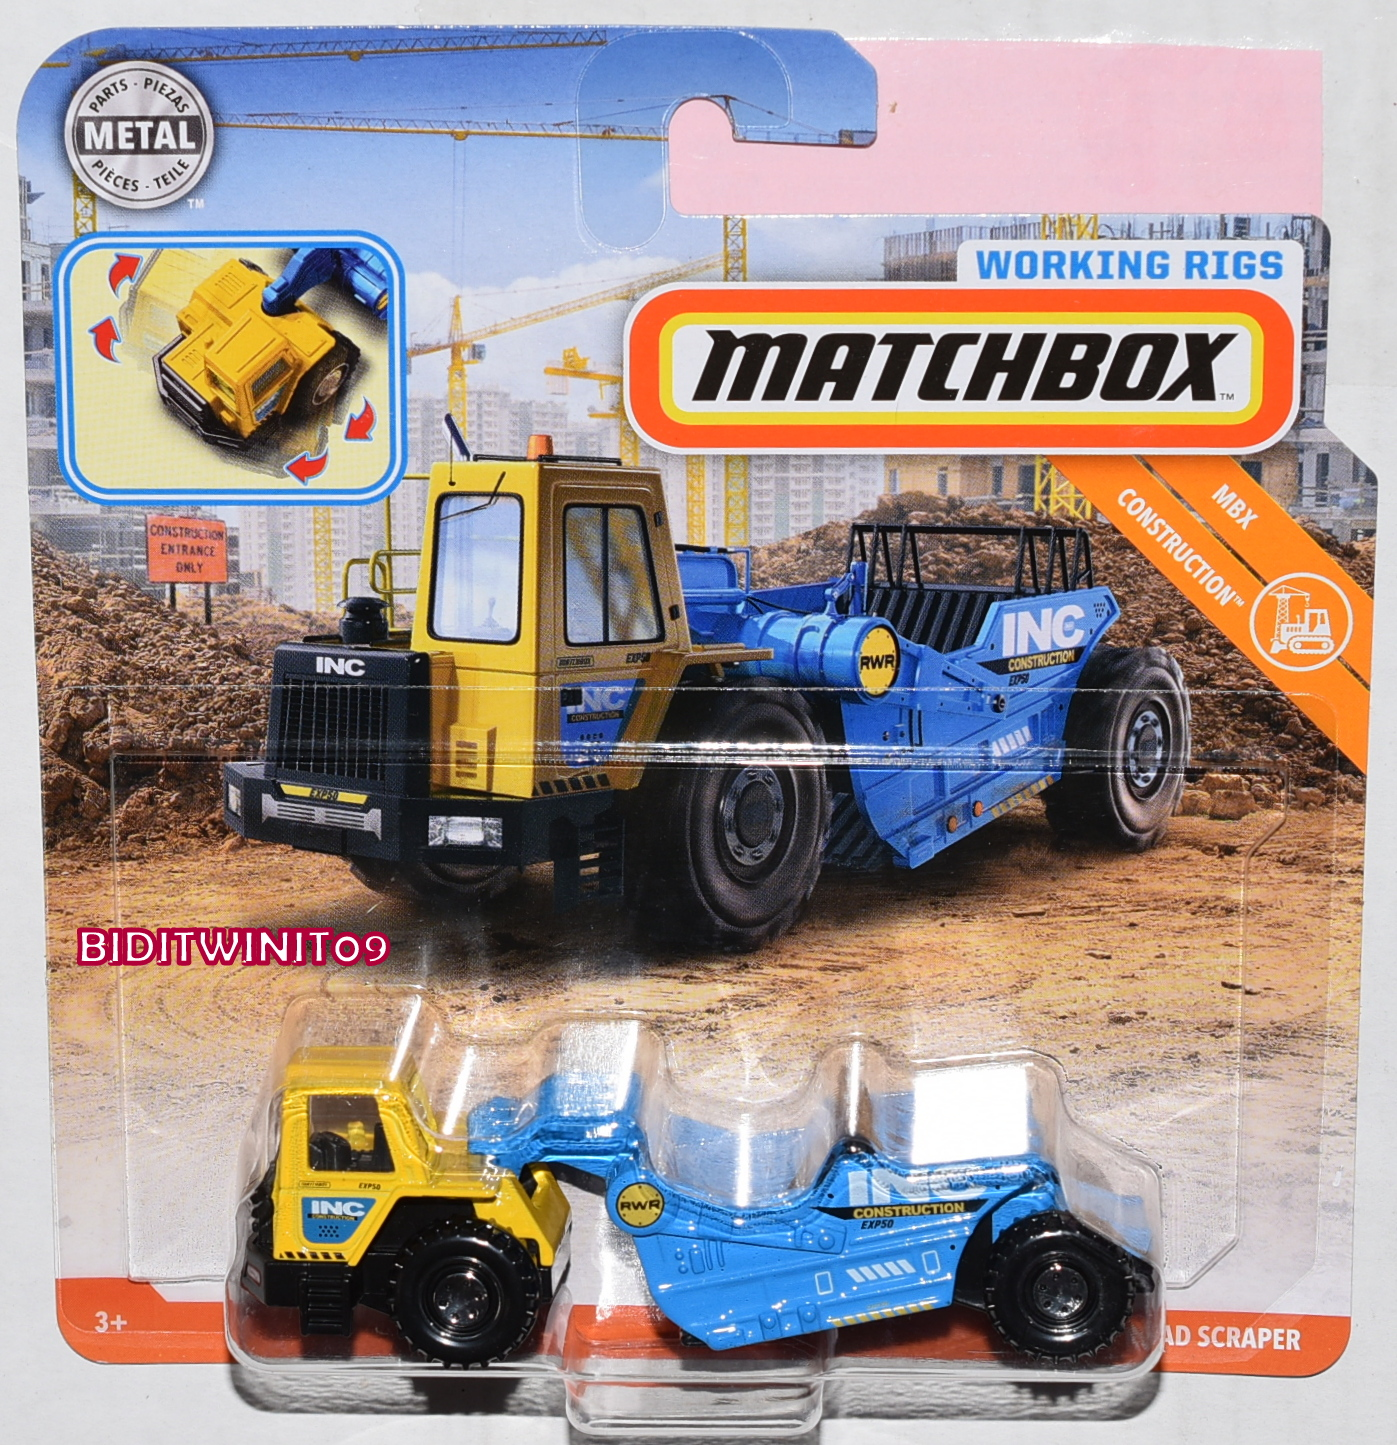 MATCHBOX 2019 WORKING RIGS MBX CONSTRUCTION ROAD SCRAPER E+